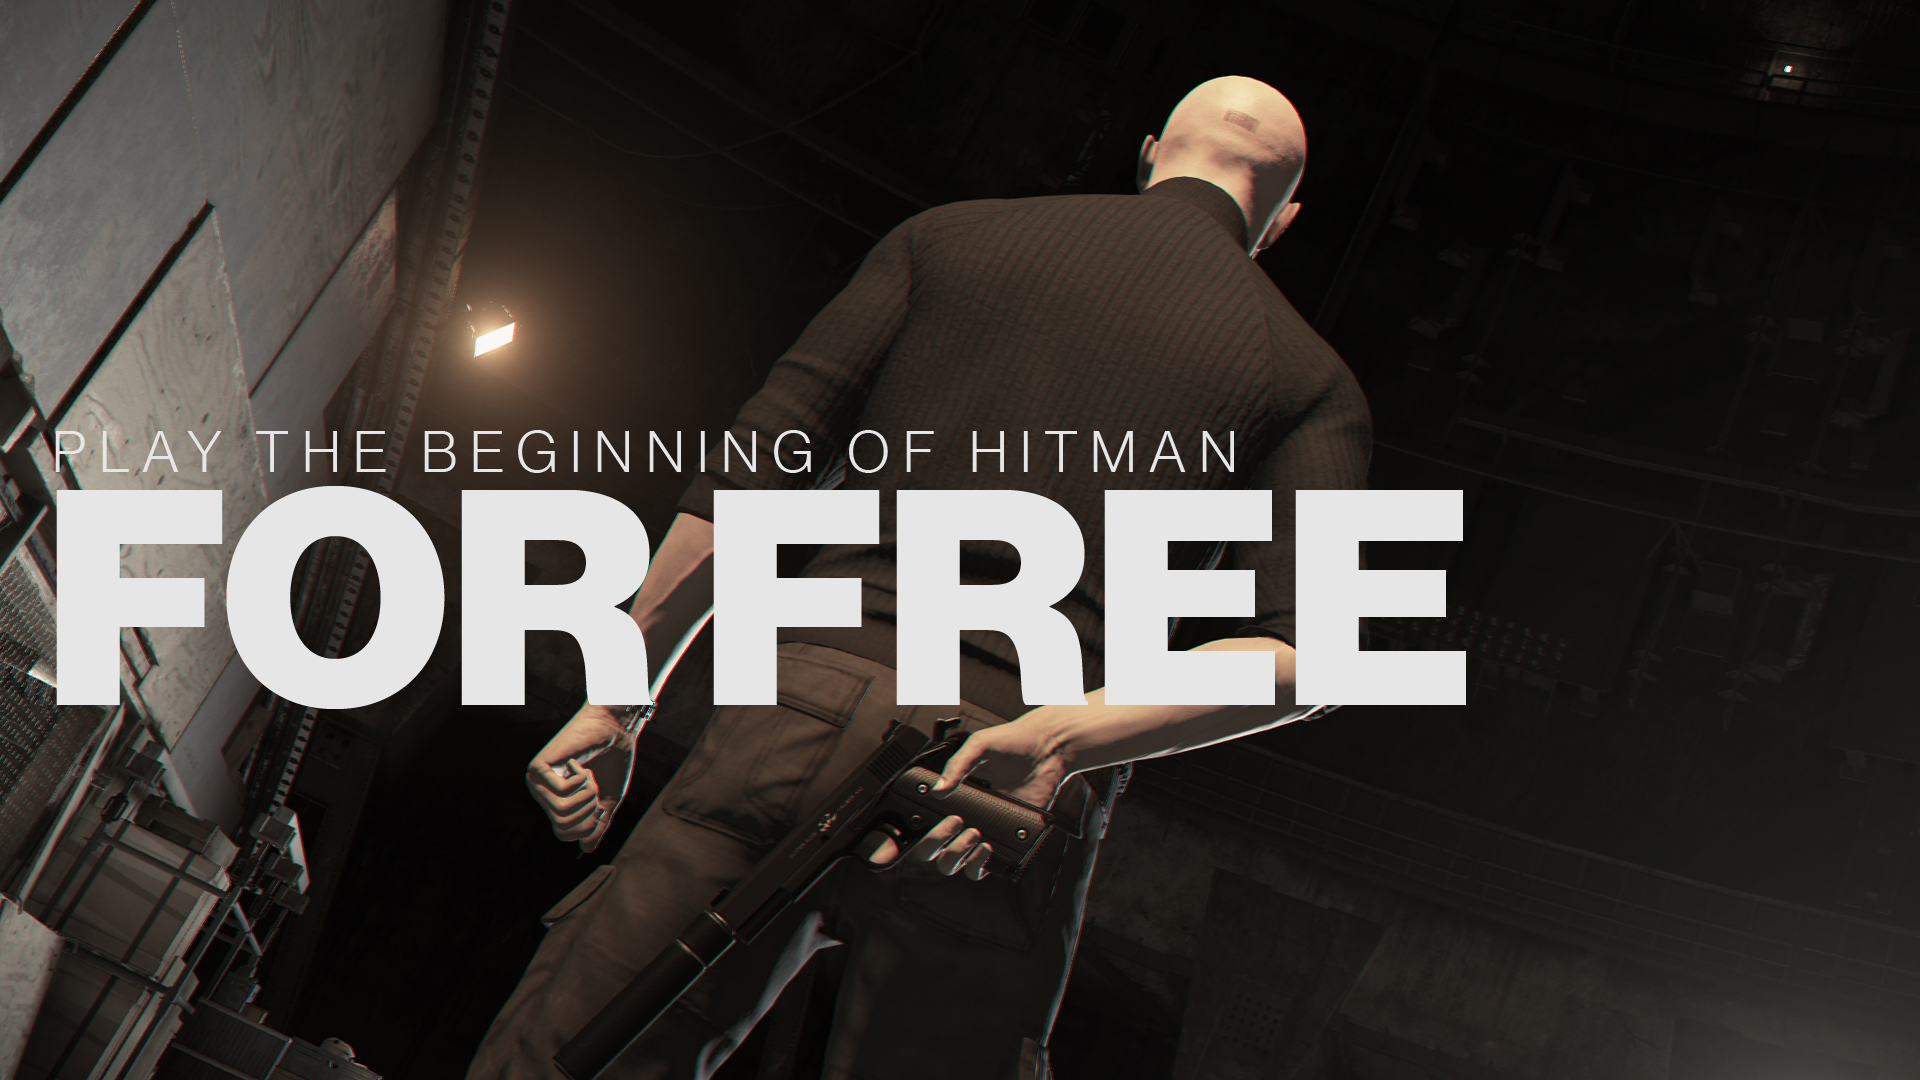 Photo of a promising new era for Hitman